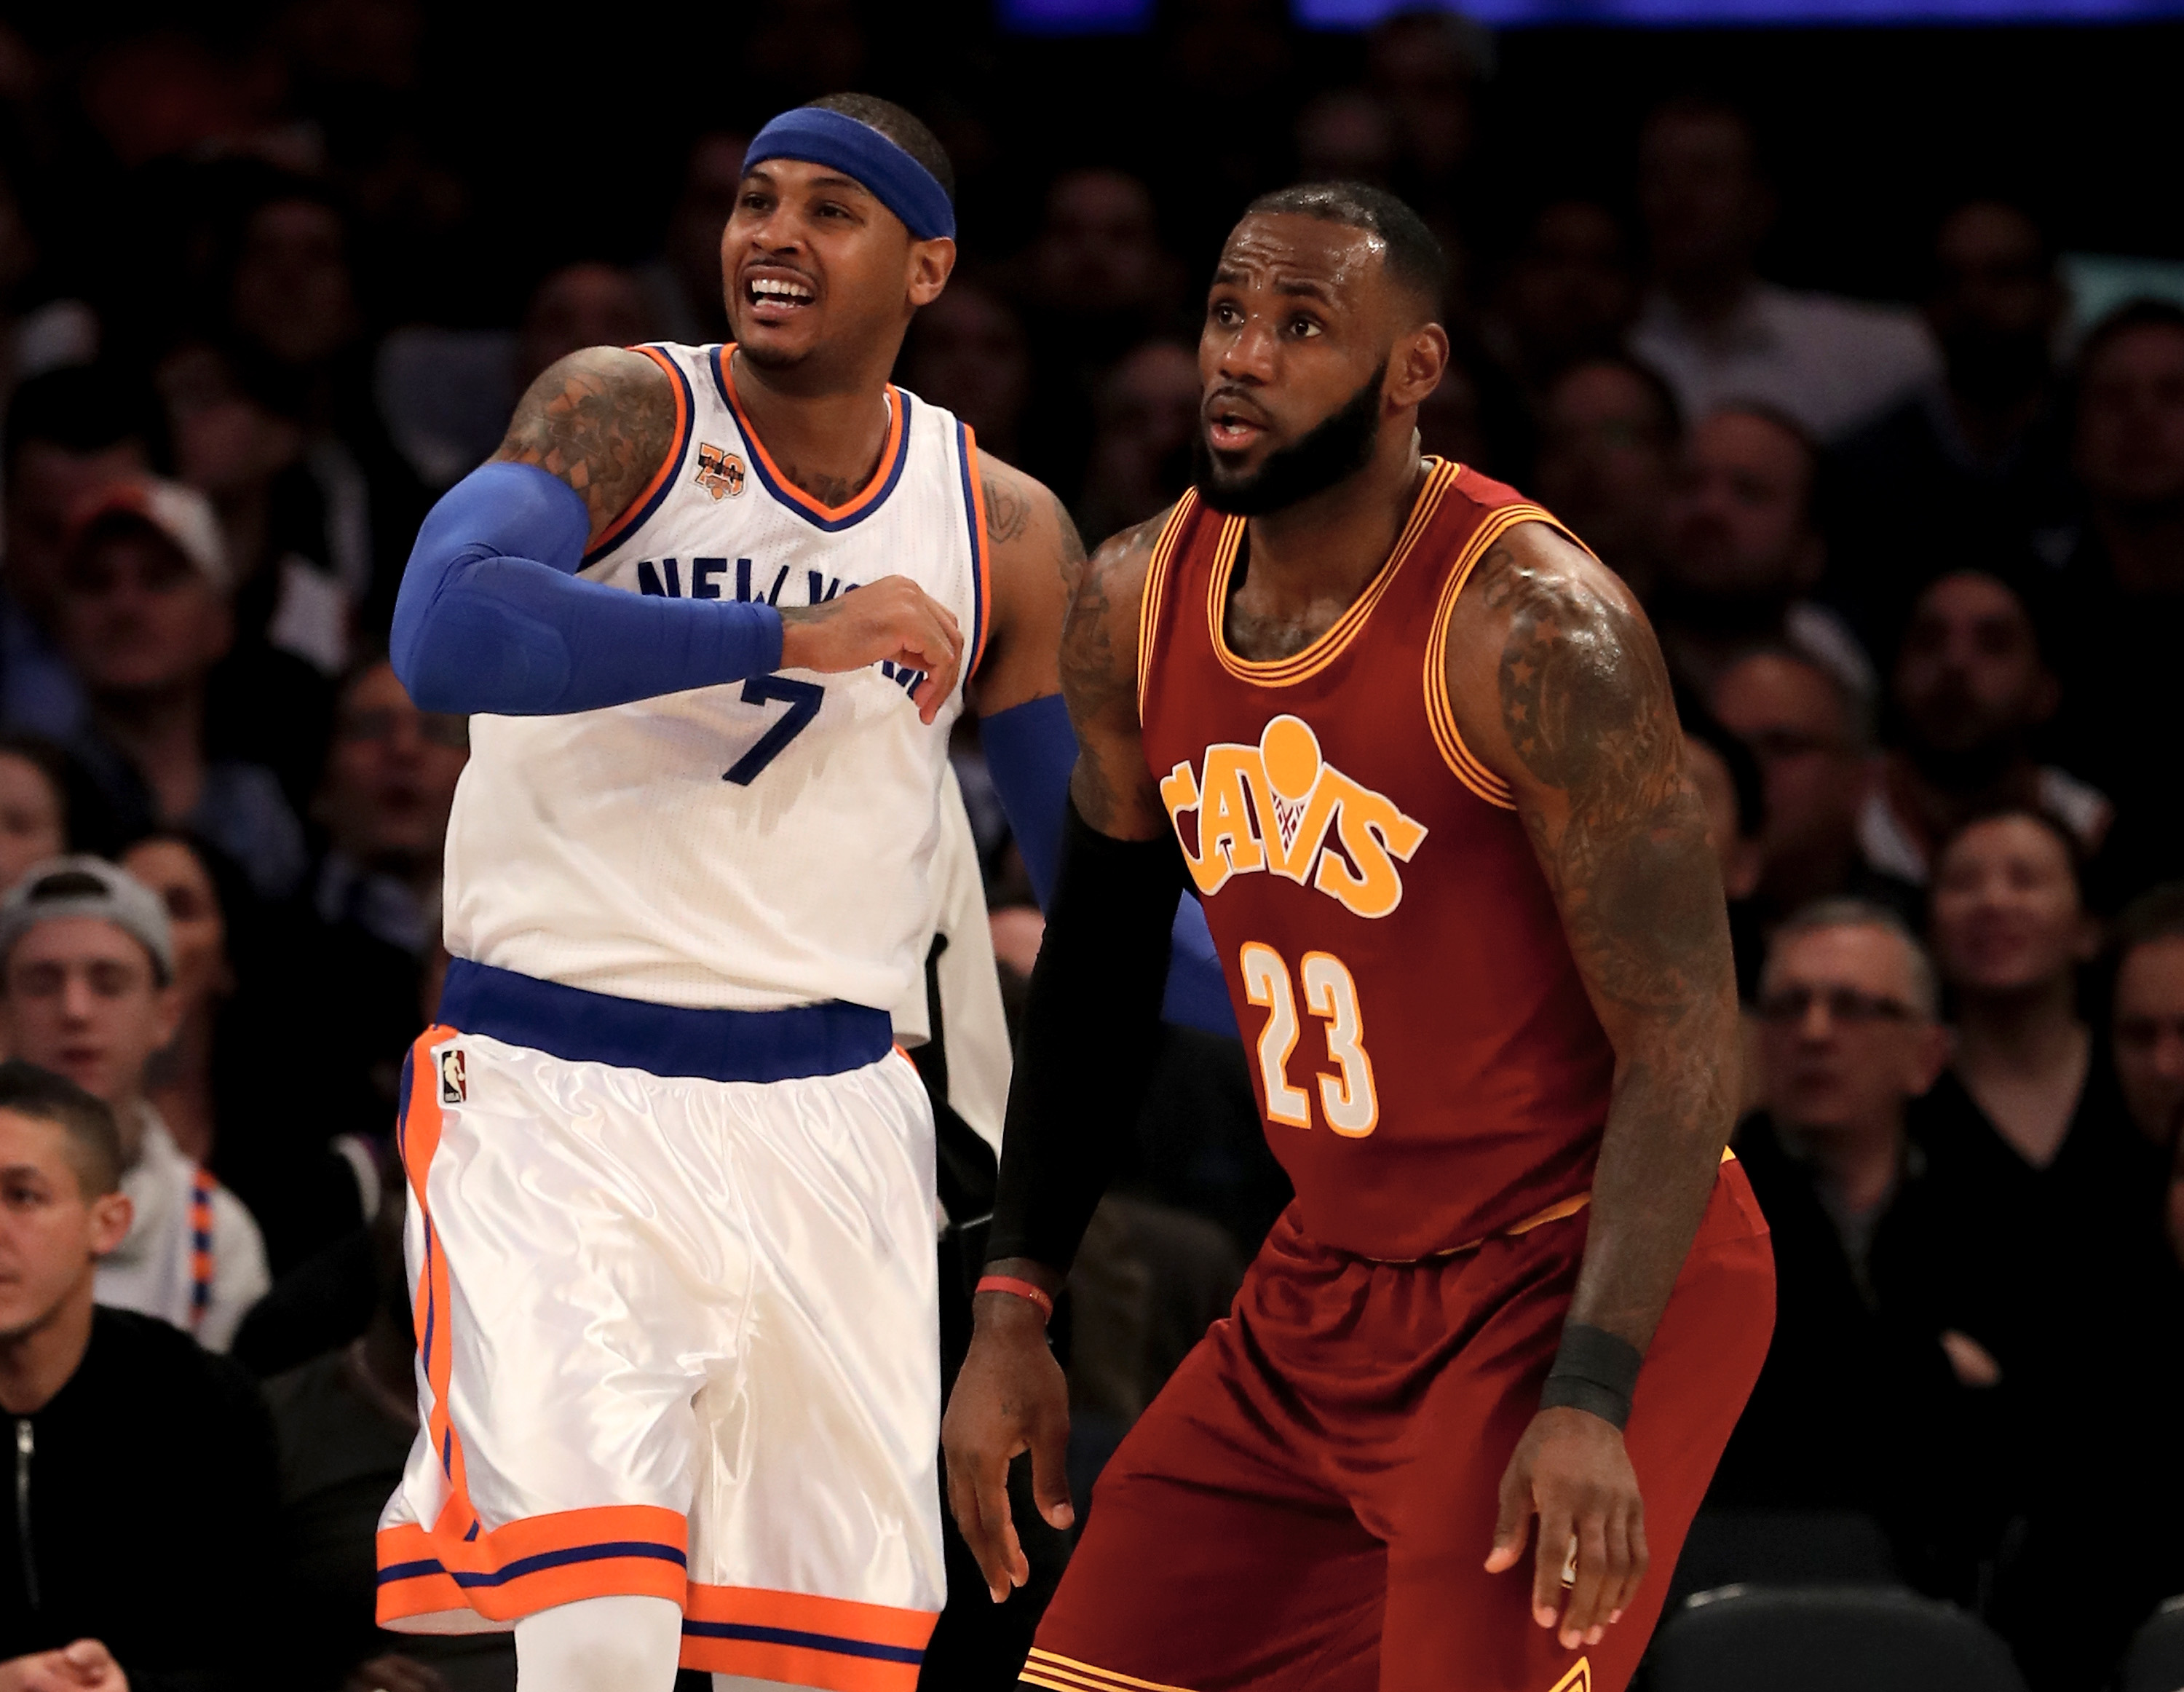 Knicks, Rockets Reportedly Working On 4-Team Trade For Carmelo Anthony